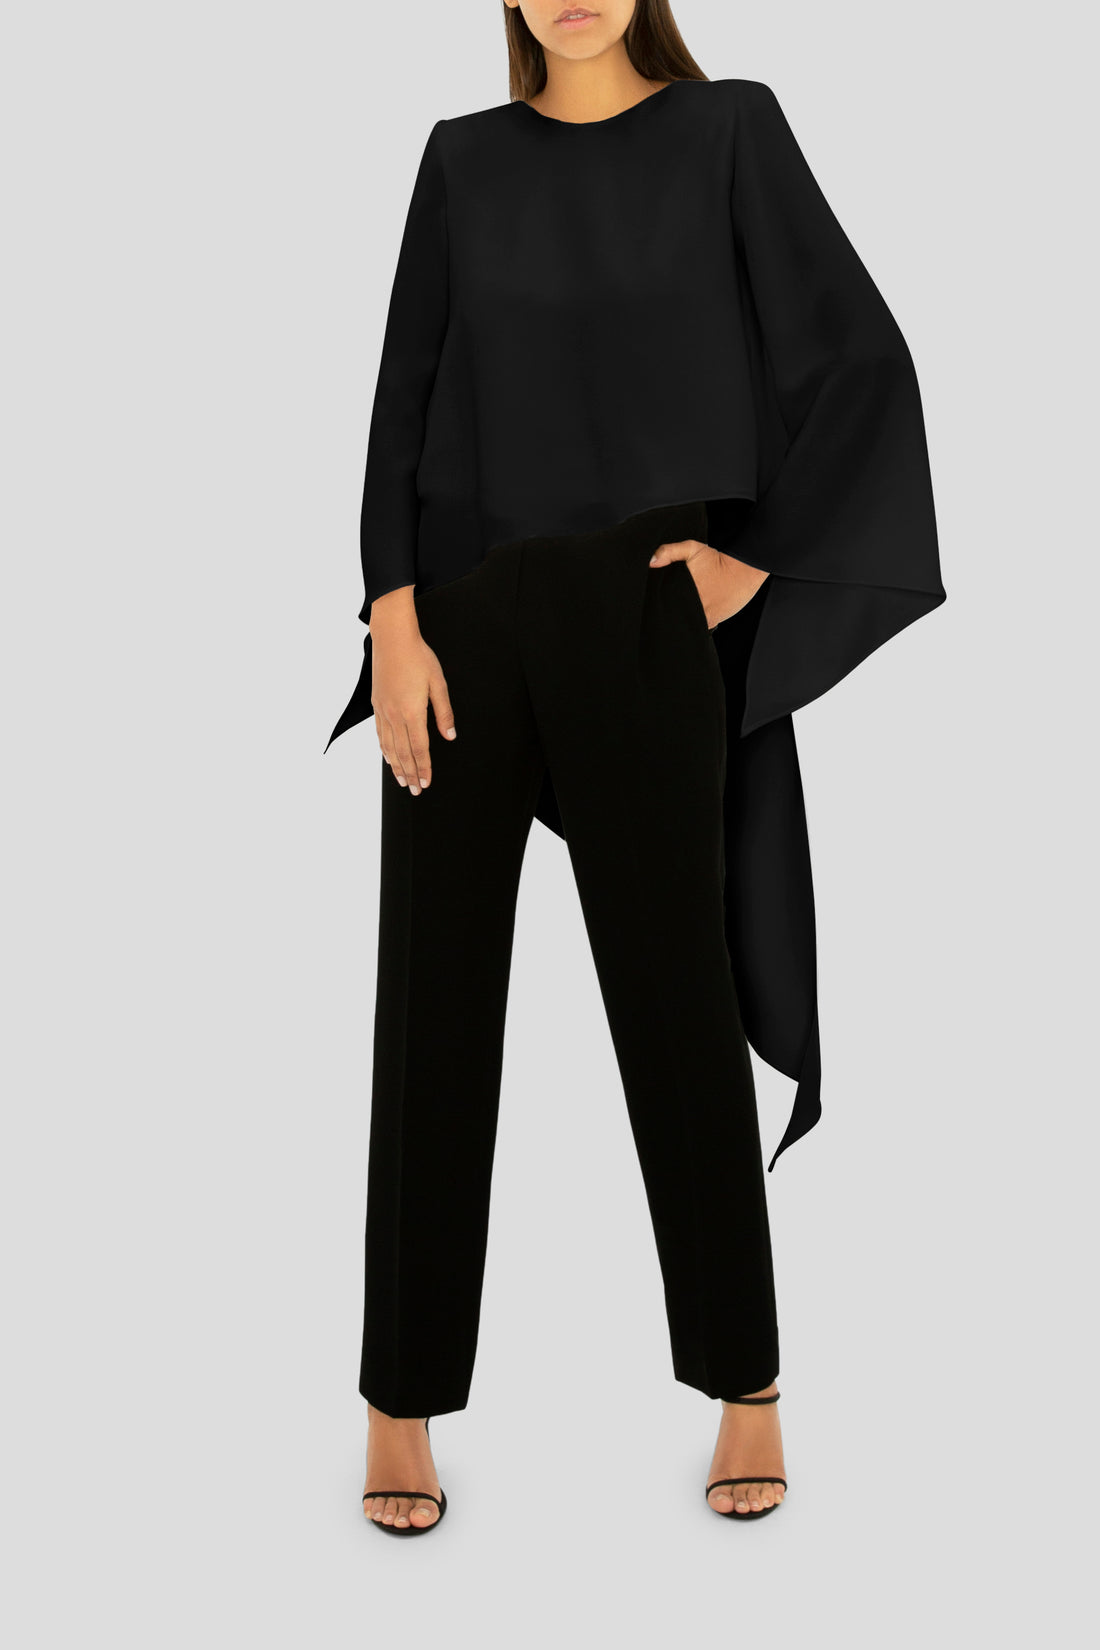 THE BLACK DESIRE SLIM PANT